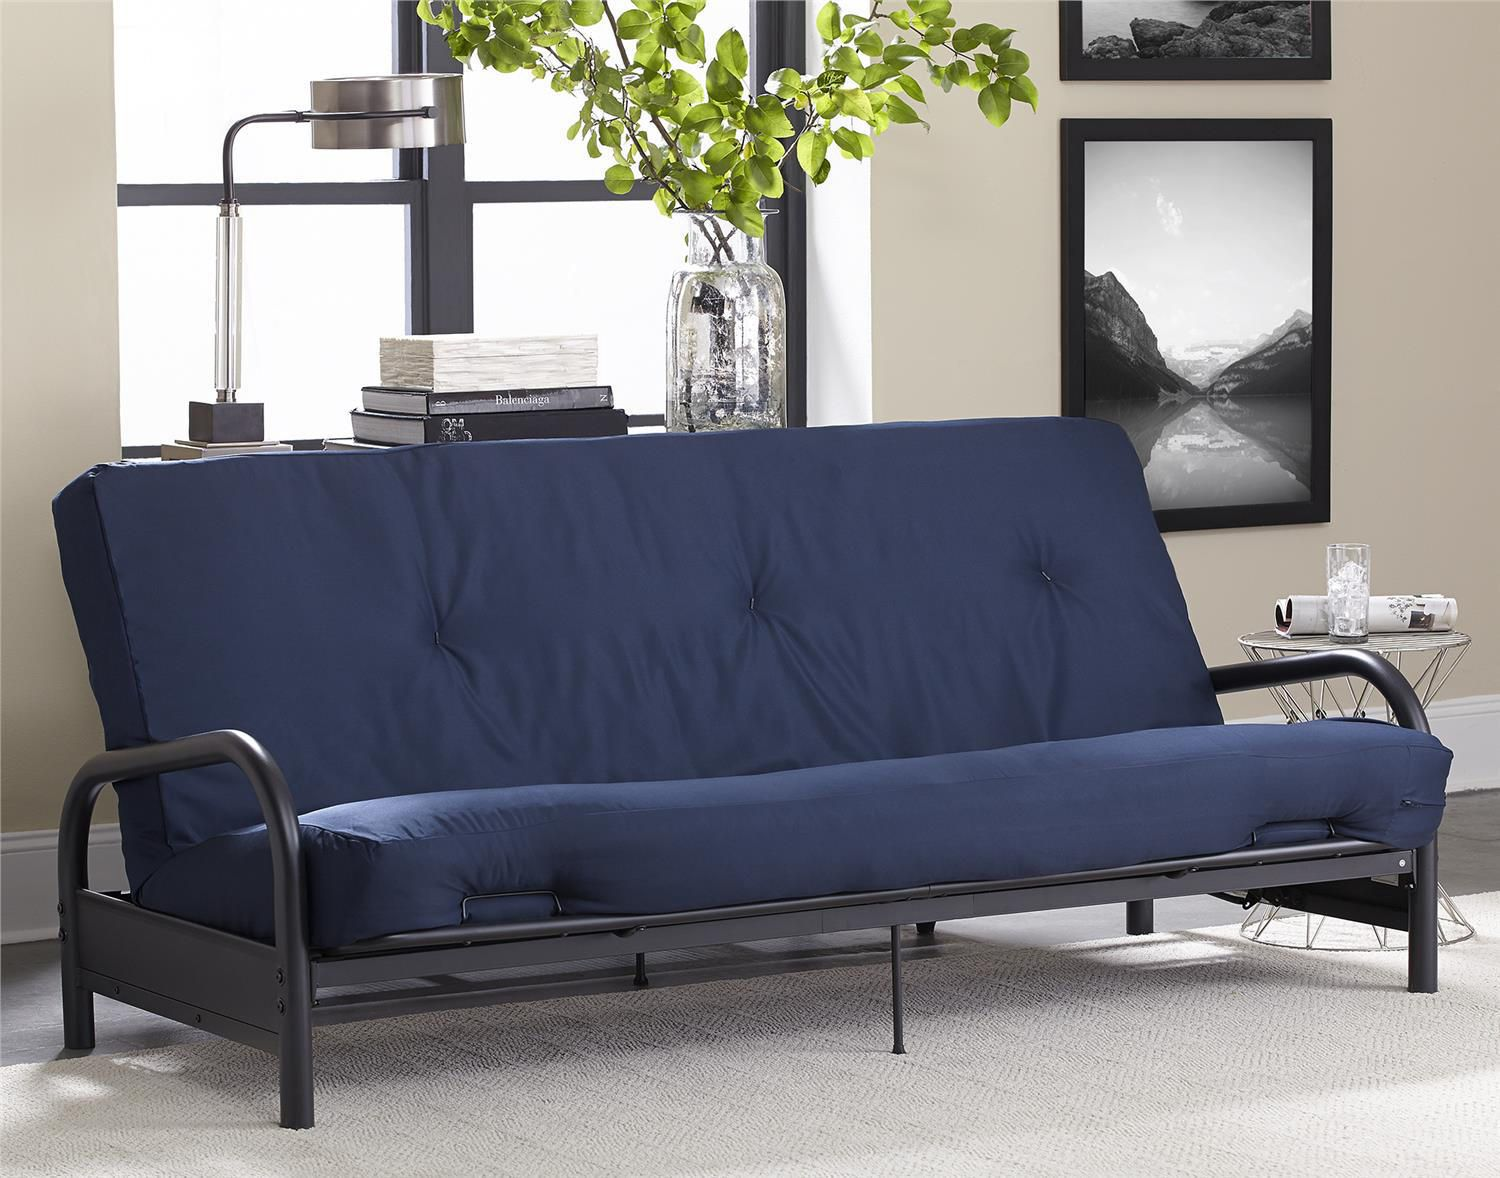 Image of: Popular Cheap Futon Mattress